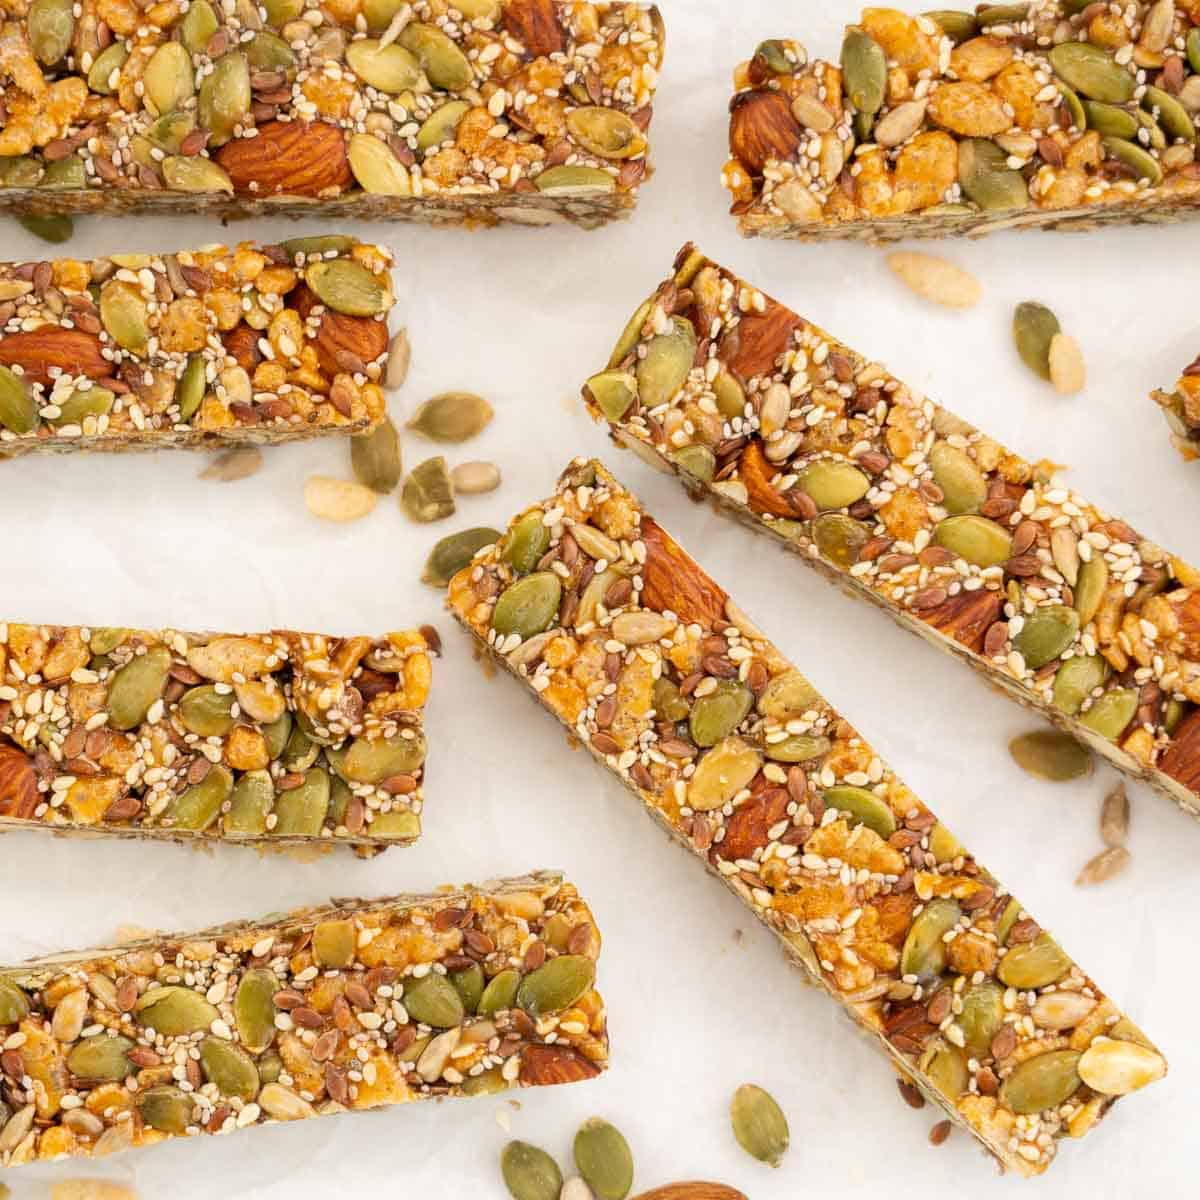 Energy bars on white crumpled baking paper surrounded by scattered nuts and seeds.